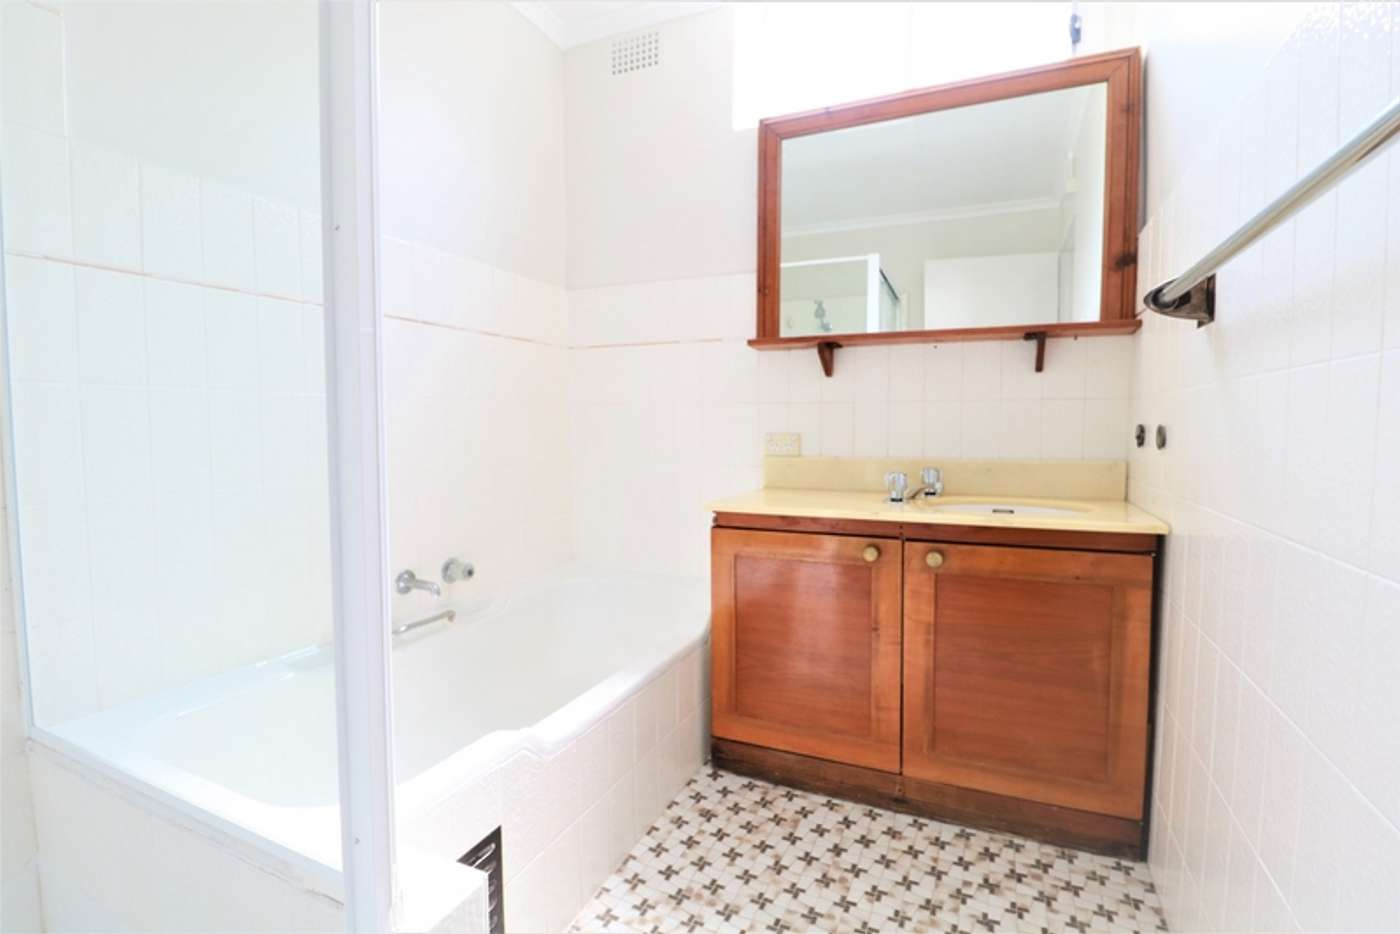 Seventh view of Homely apartment listing, 32/62 Grosvenor Crescent, Summer Hill NSW 2130